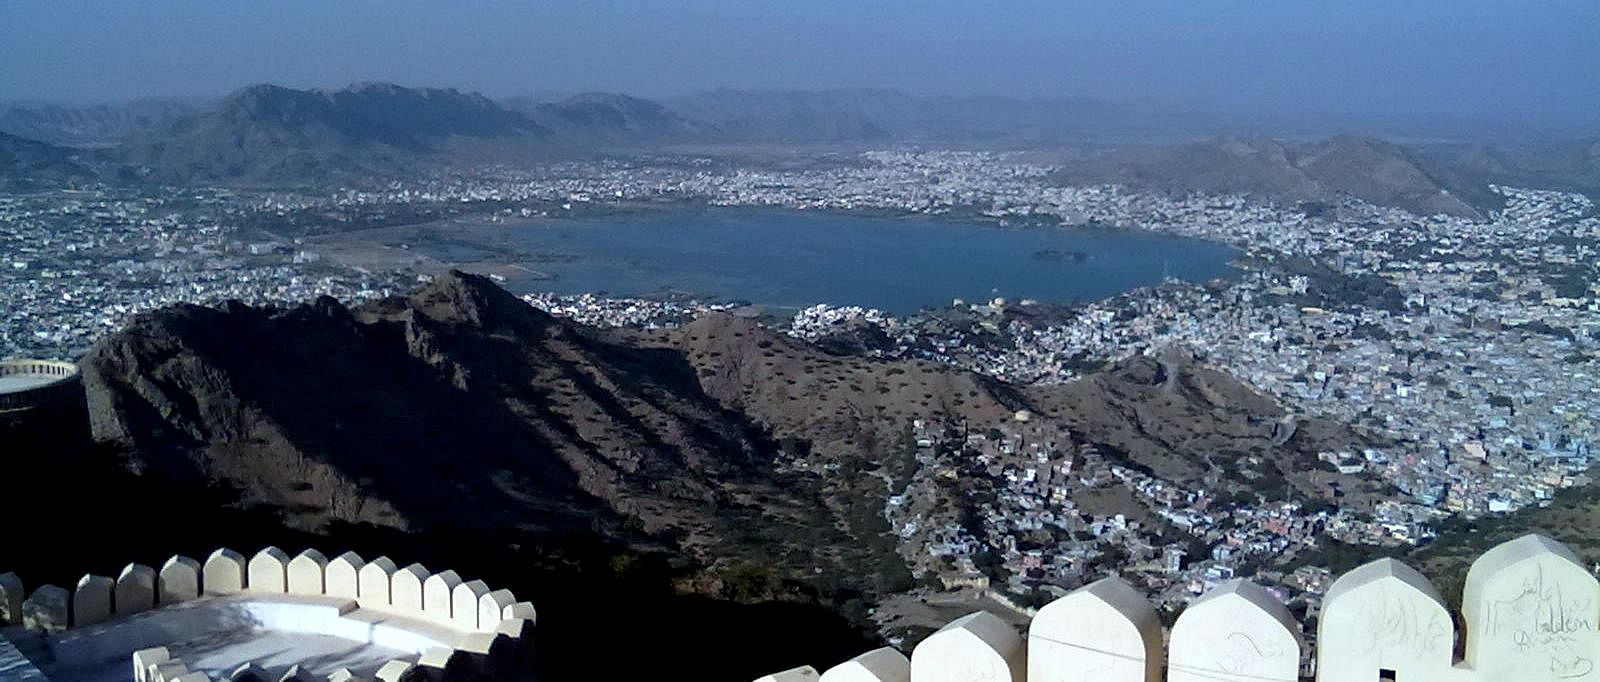 An aerial view of Ajmer from the Taragarh Fort